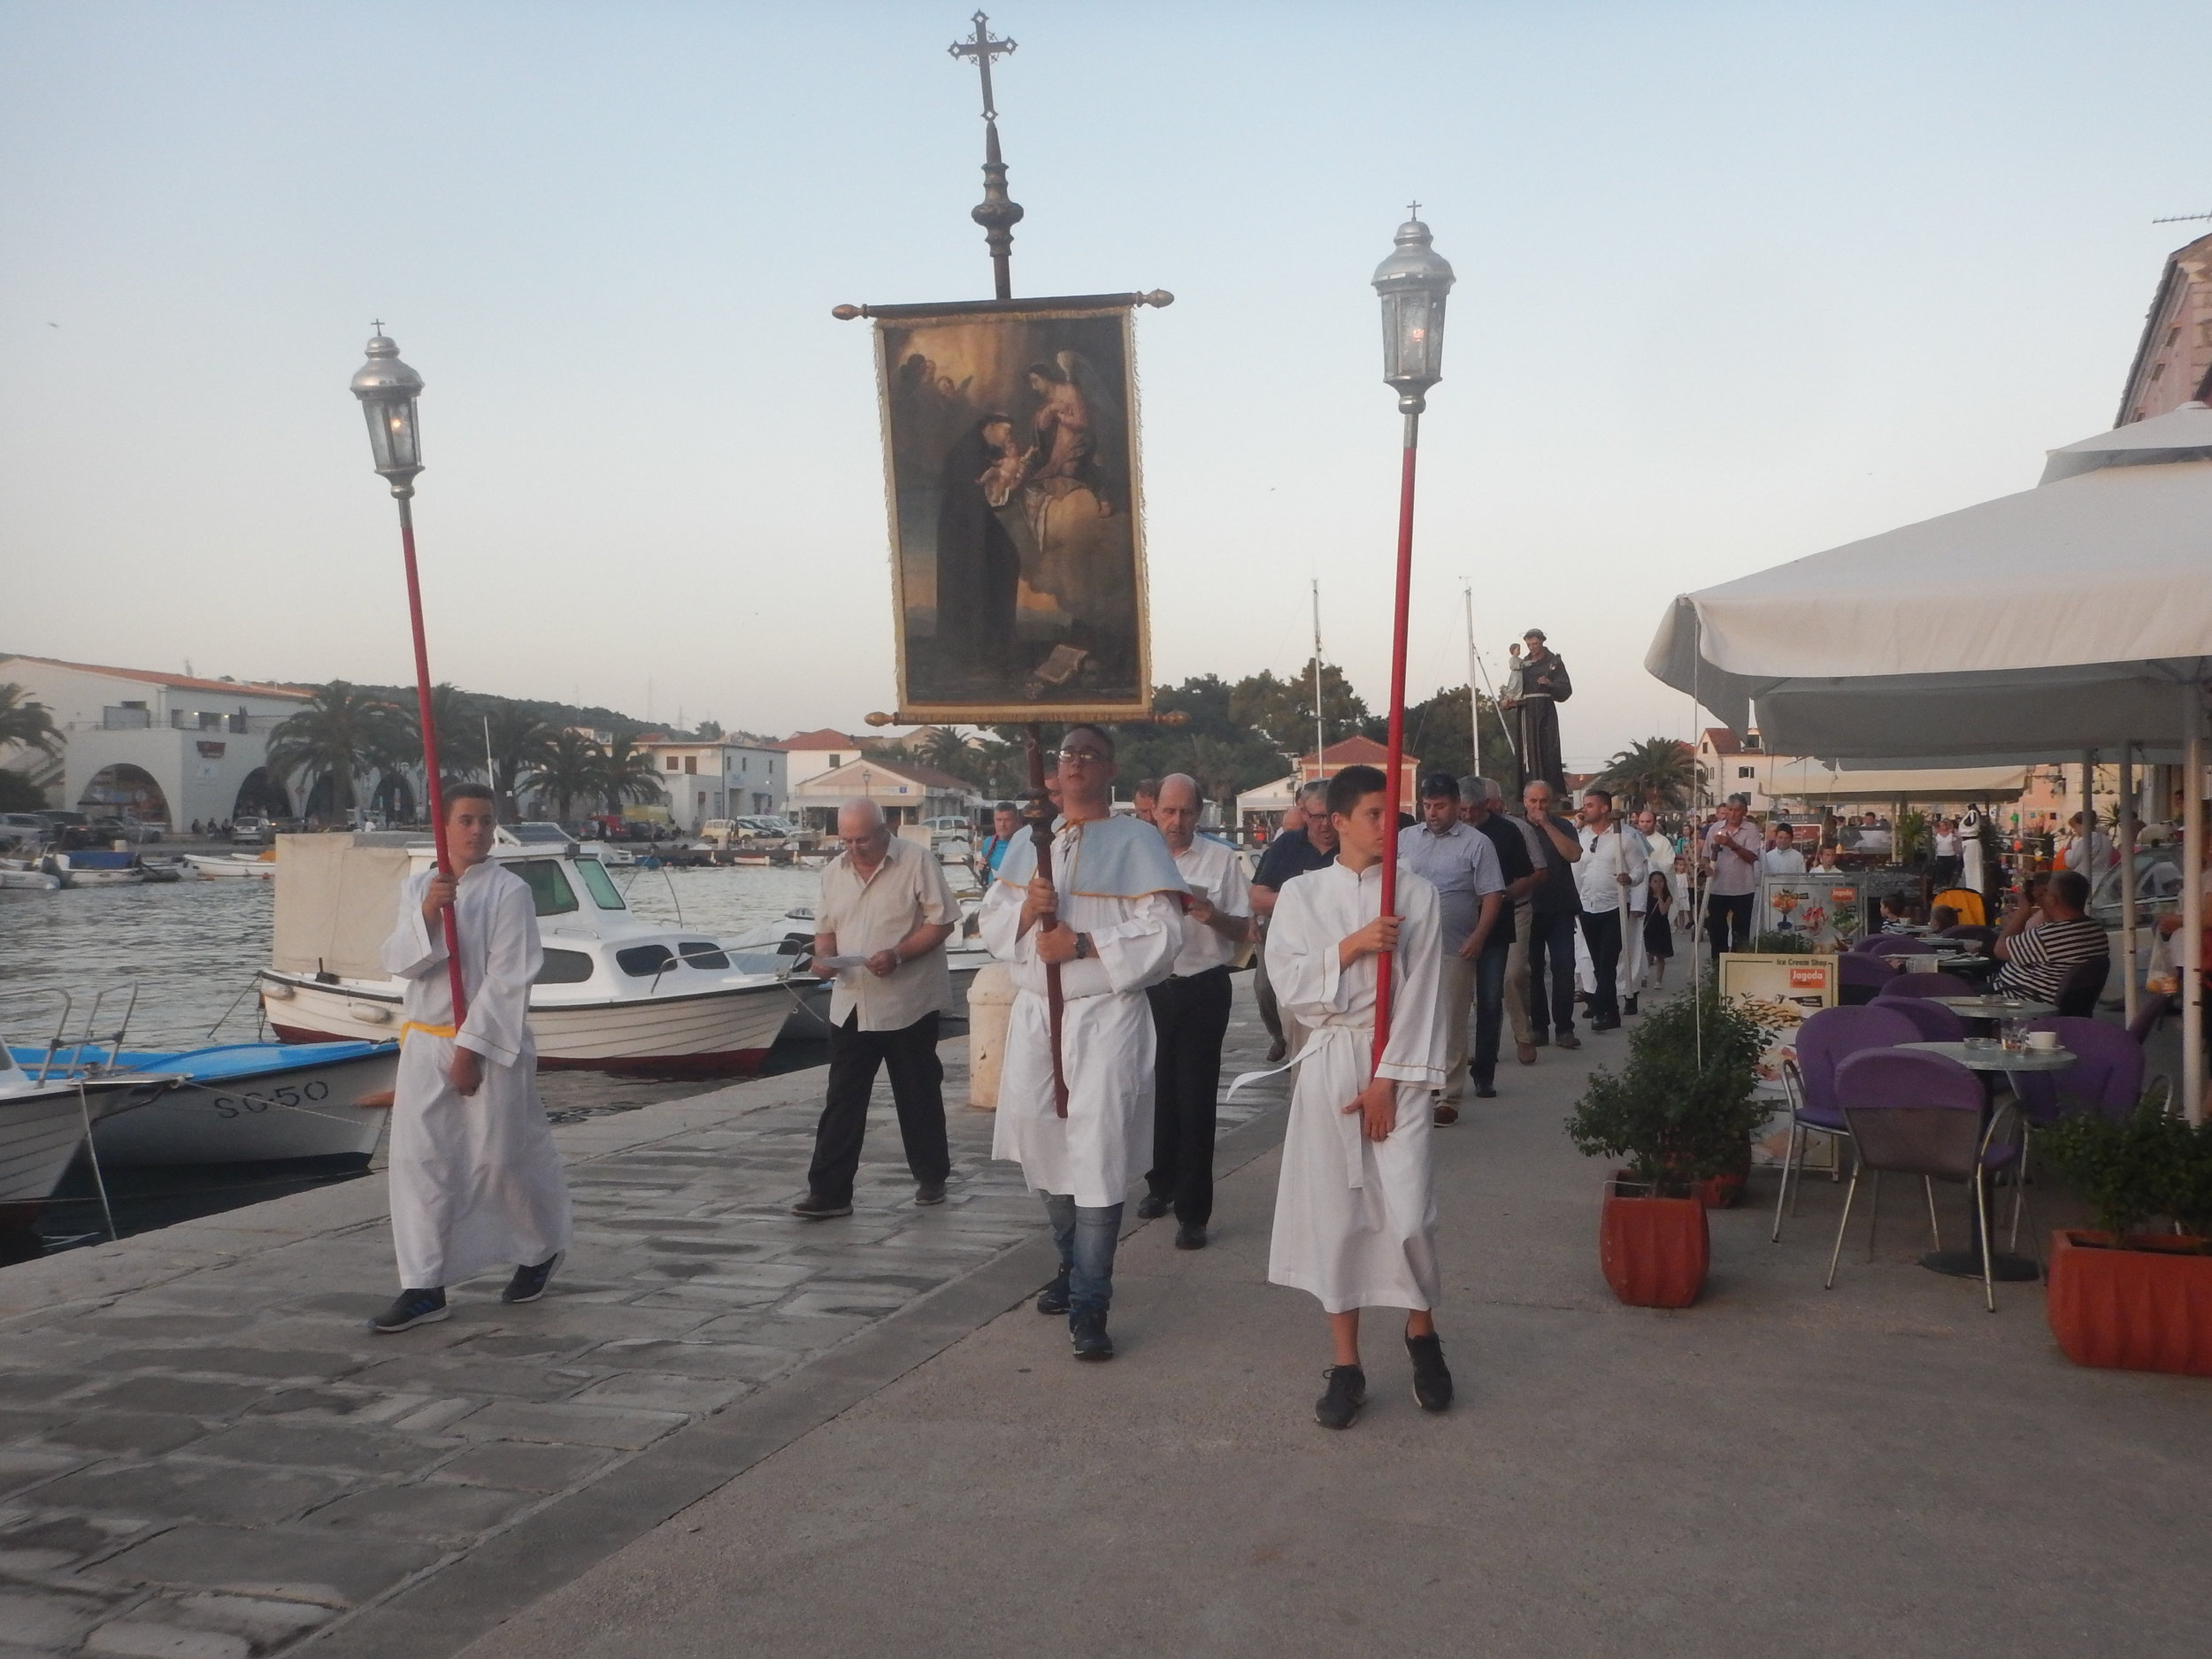 There are always processions for Saints Days or local history anniversaries.